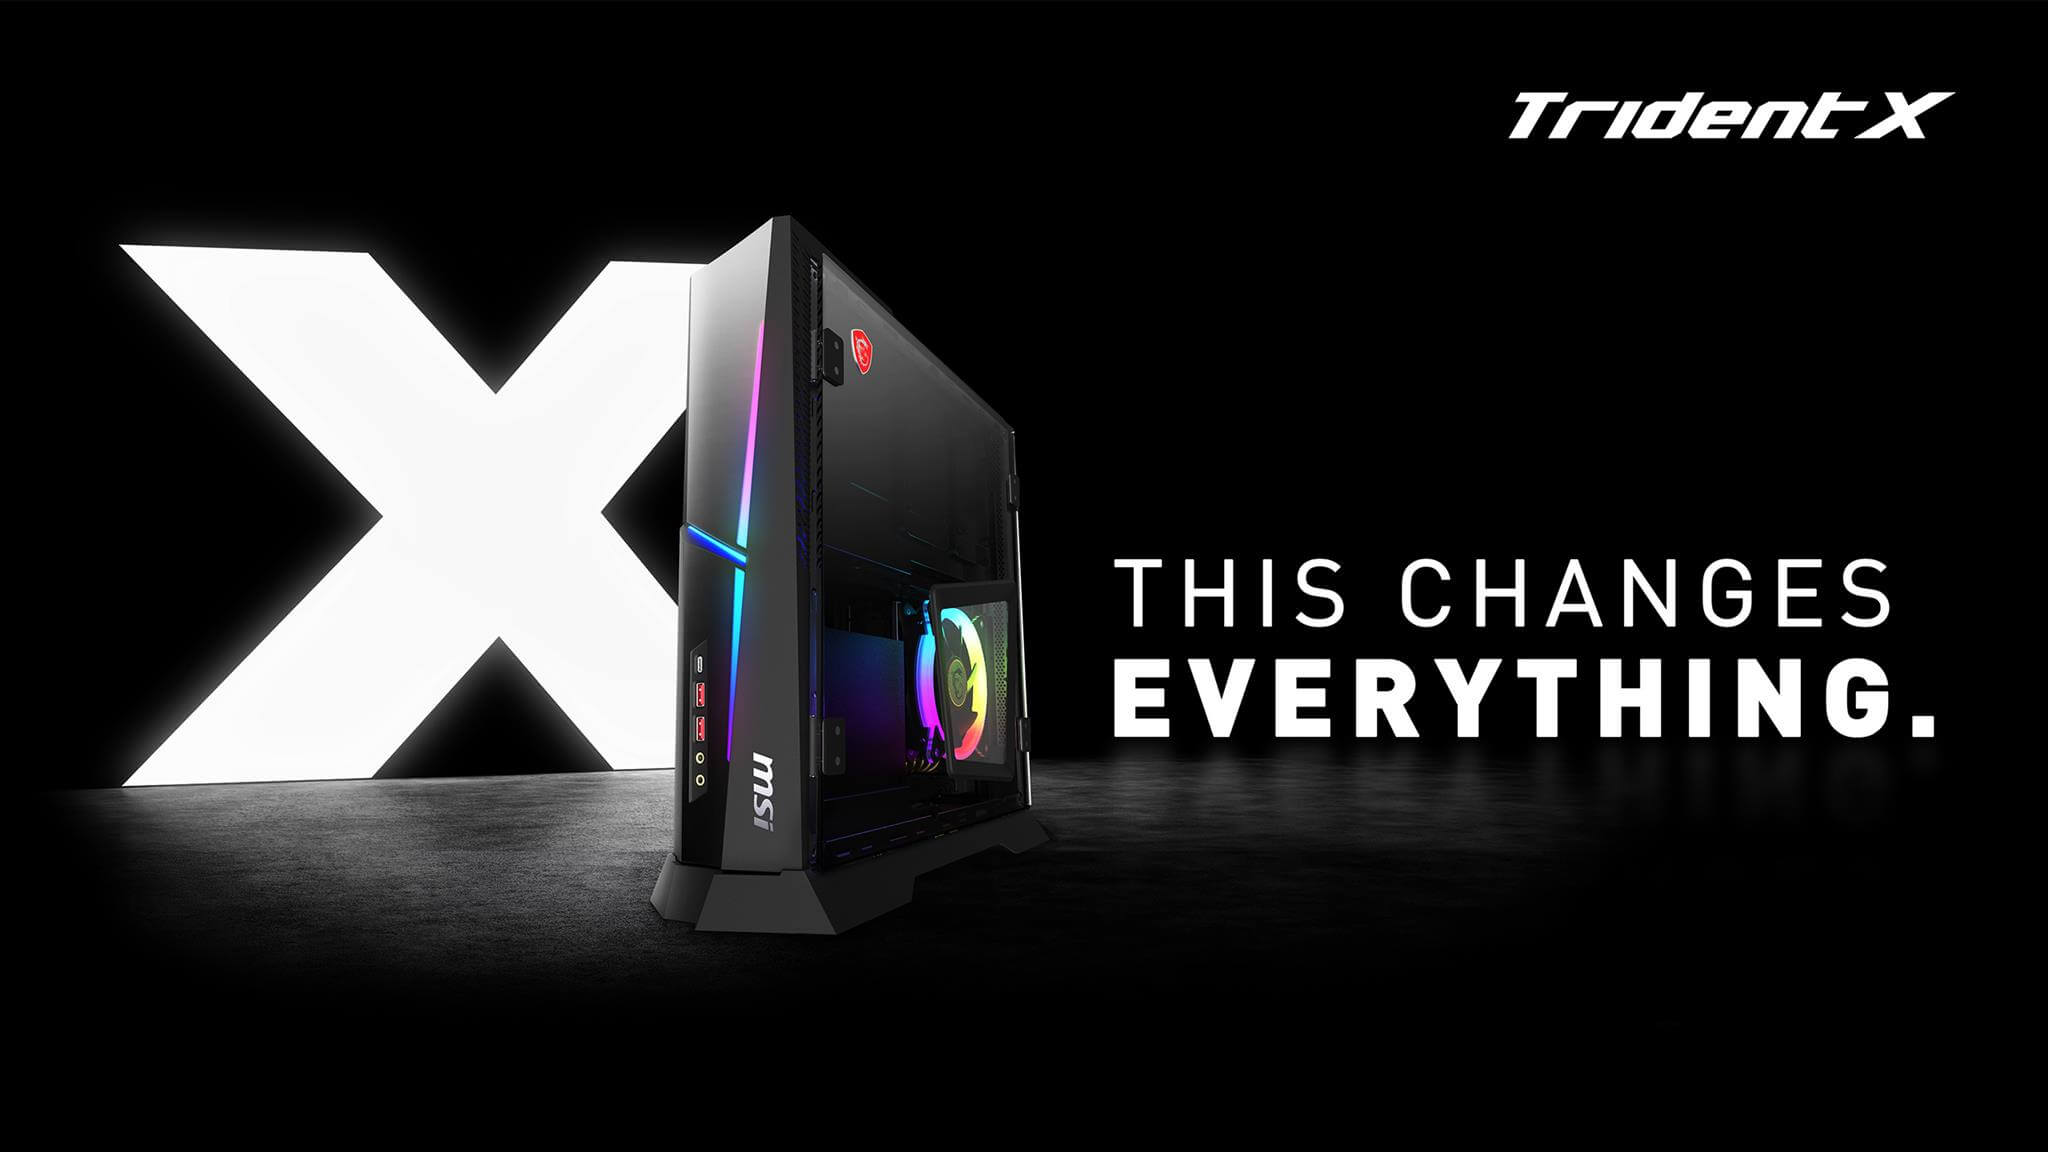 Msi Trident X A Slim And Super Powerful Gaming Pc